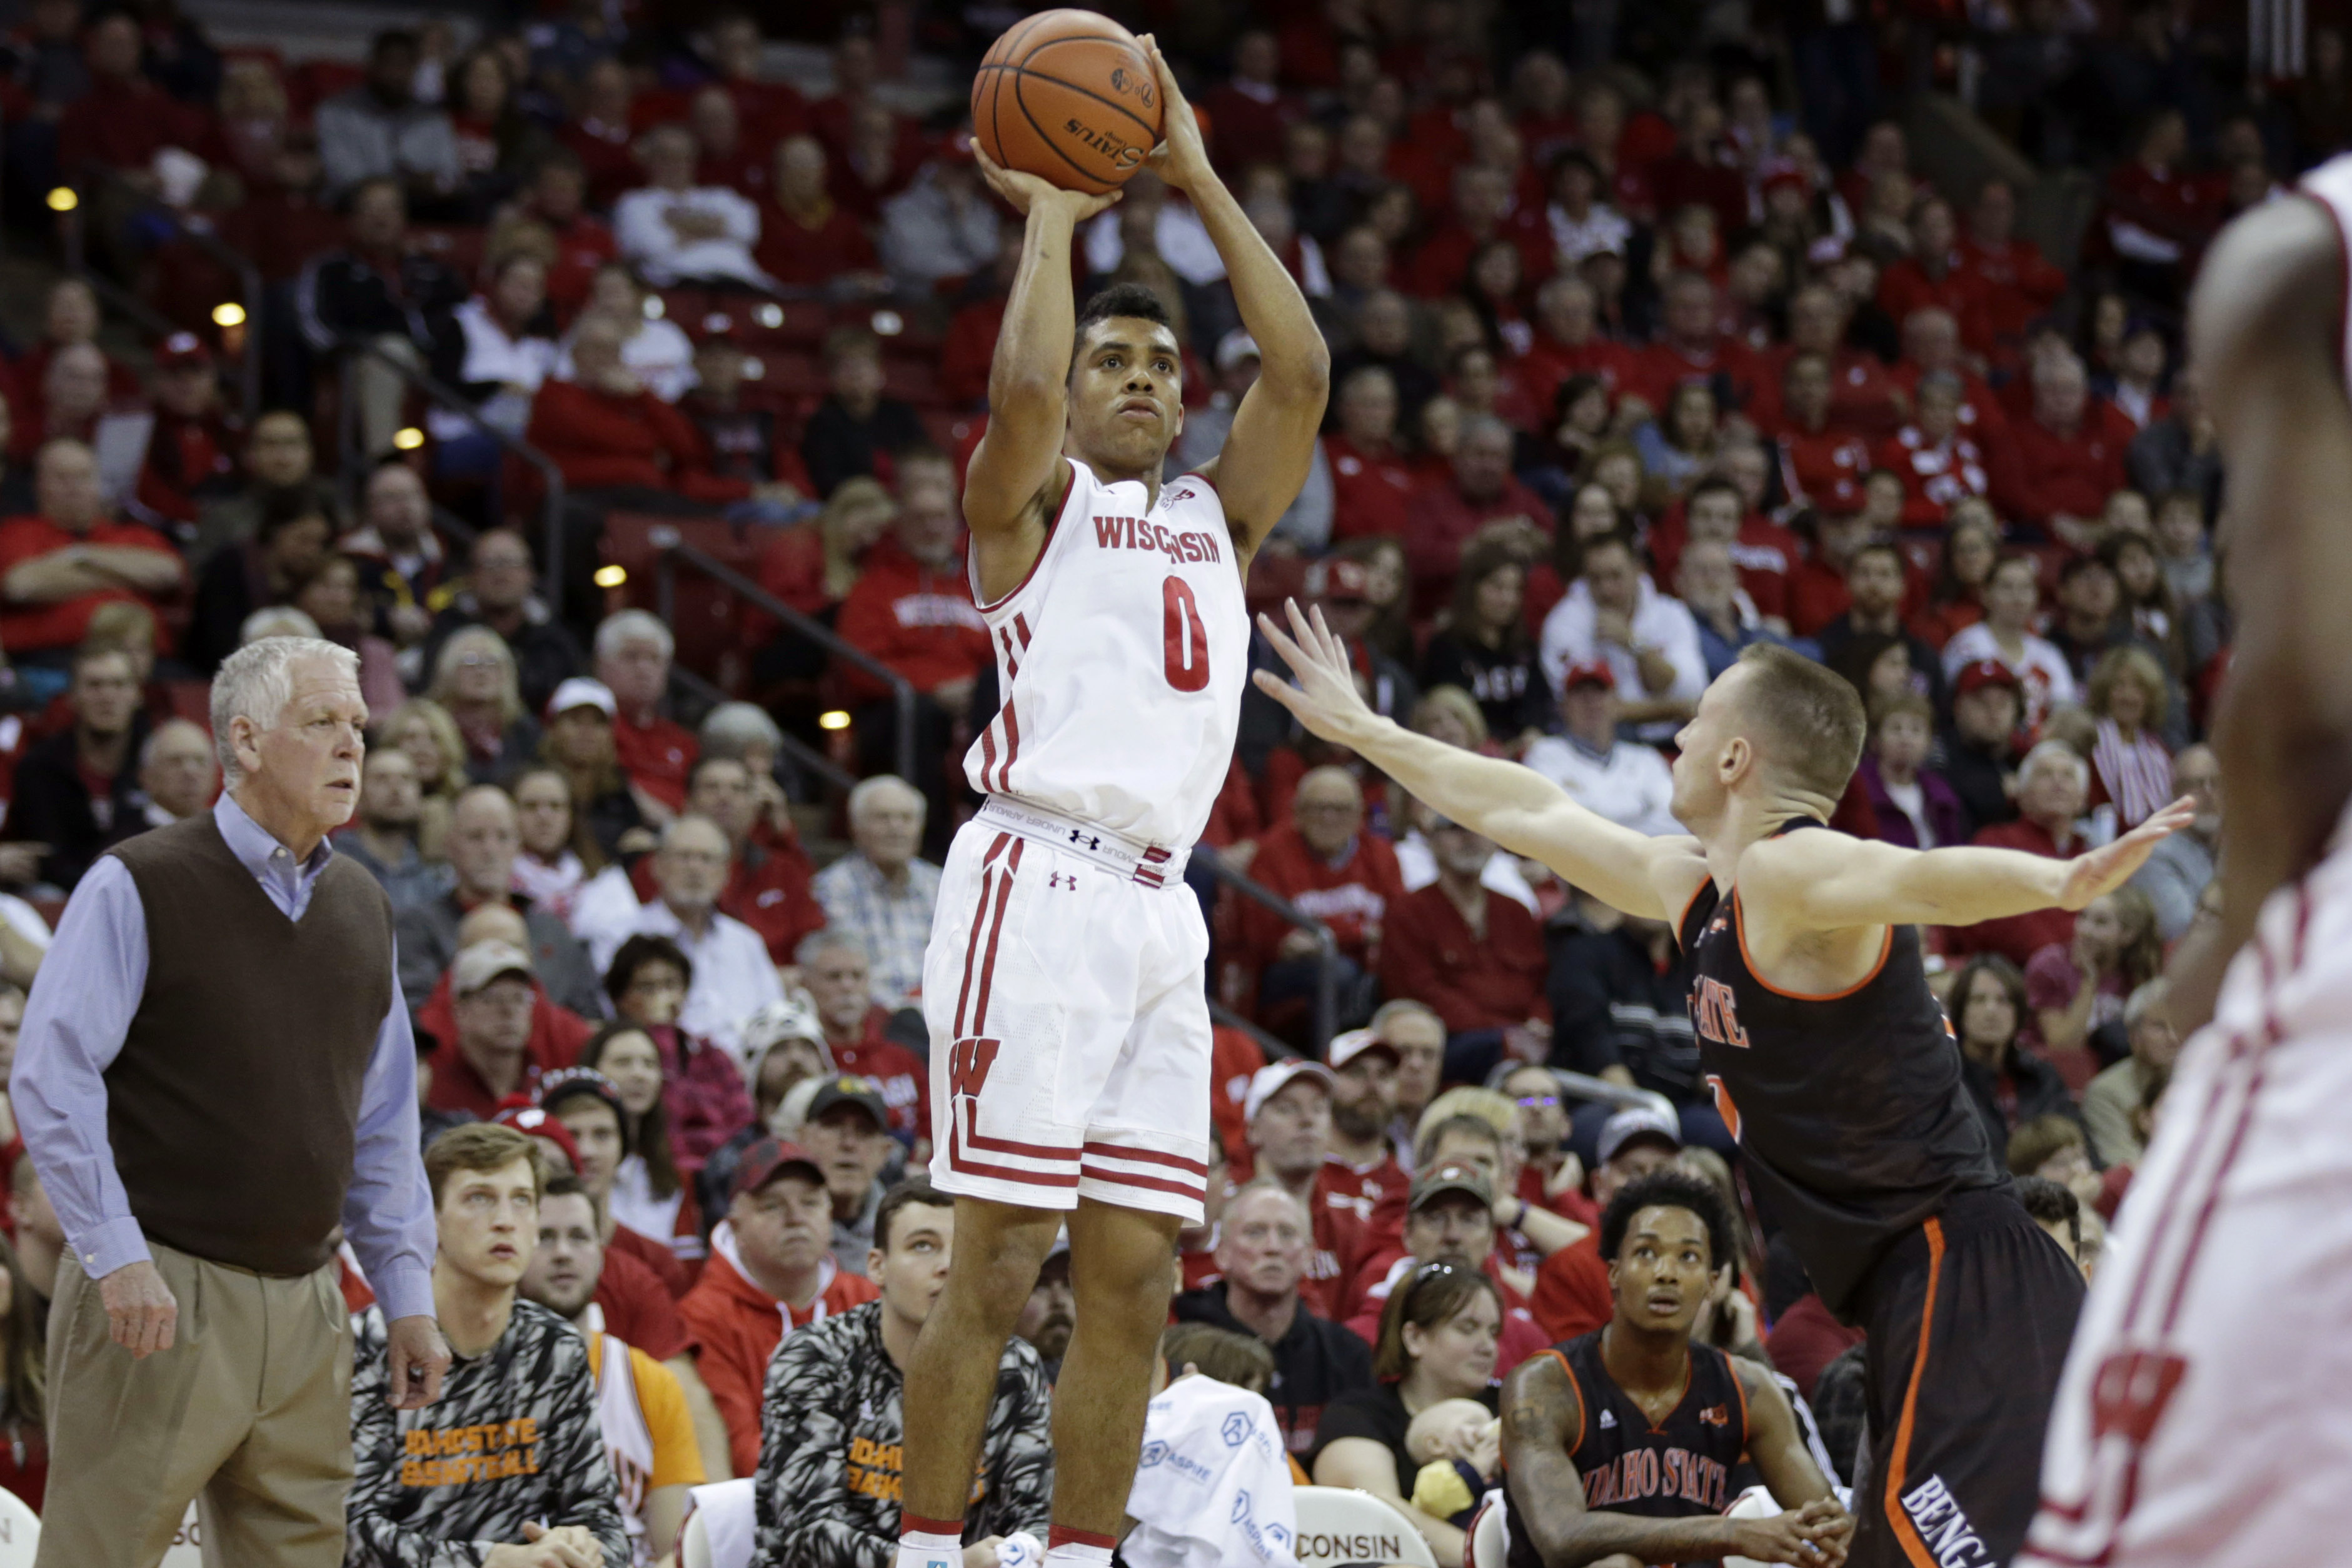 Badgers basketball closes out non-conference play by blowing out FAMU